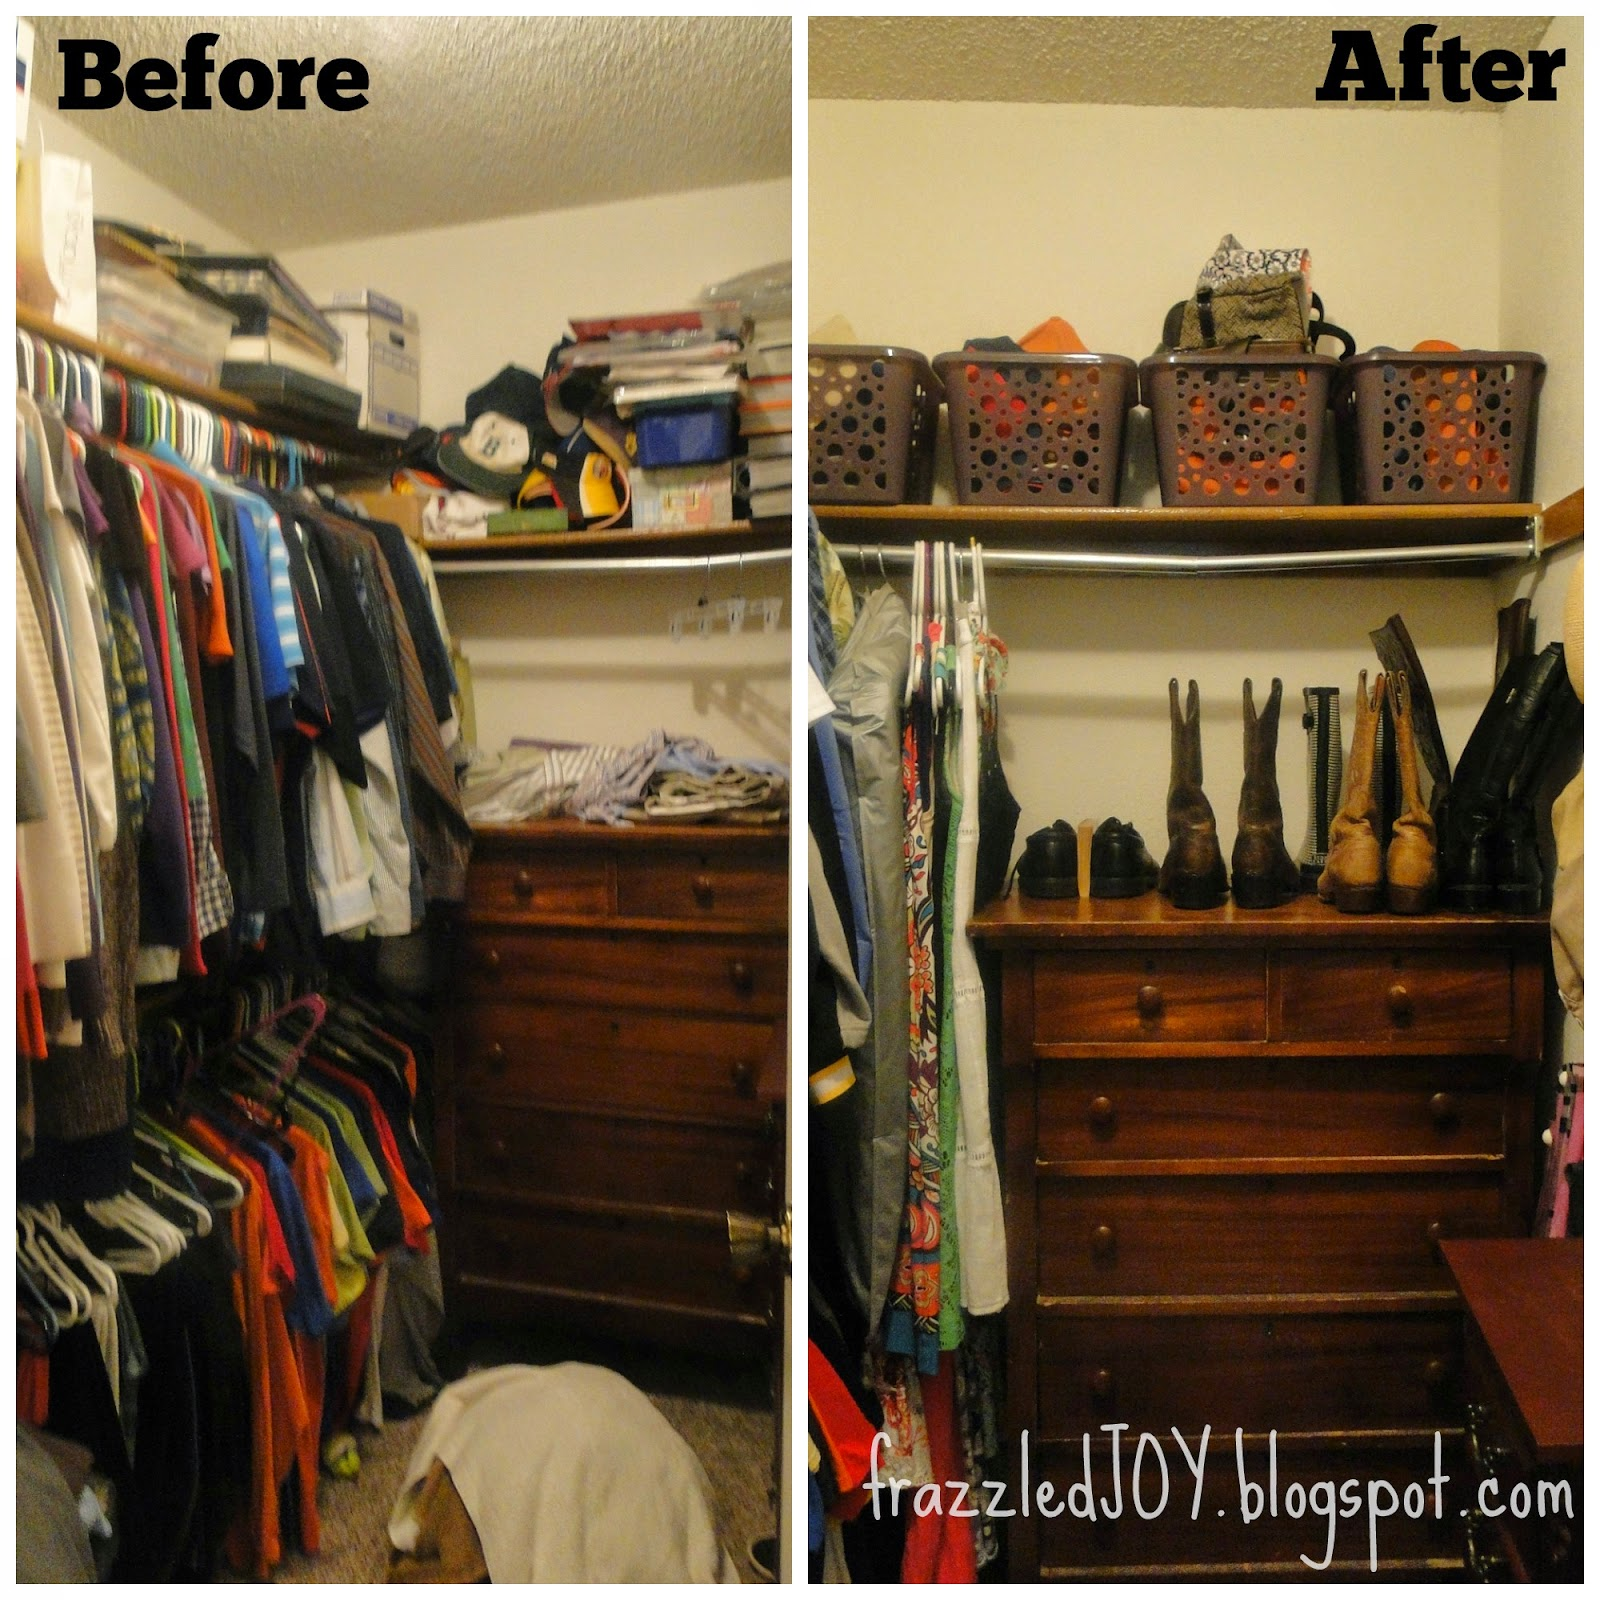 Before and after closet clean up.